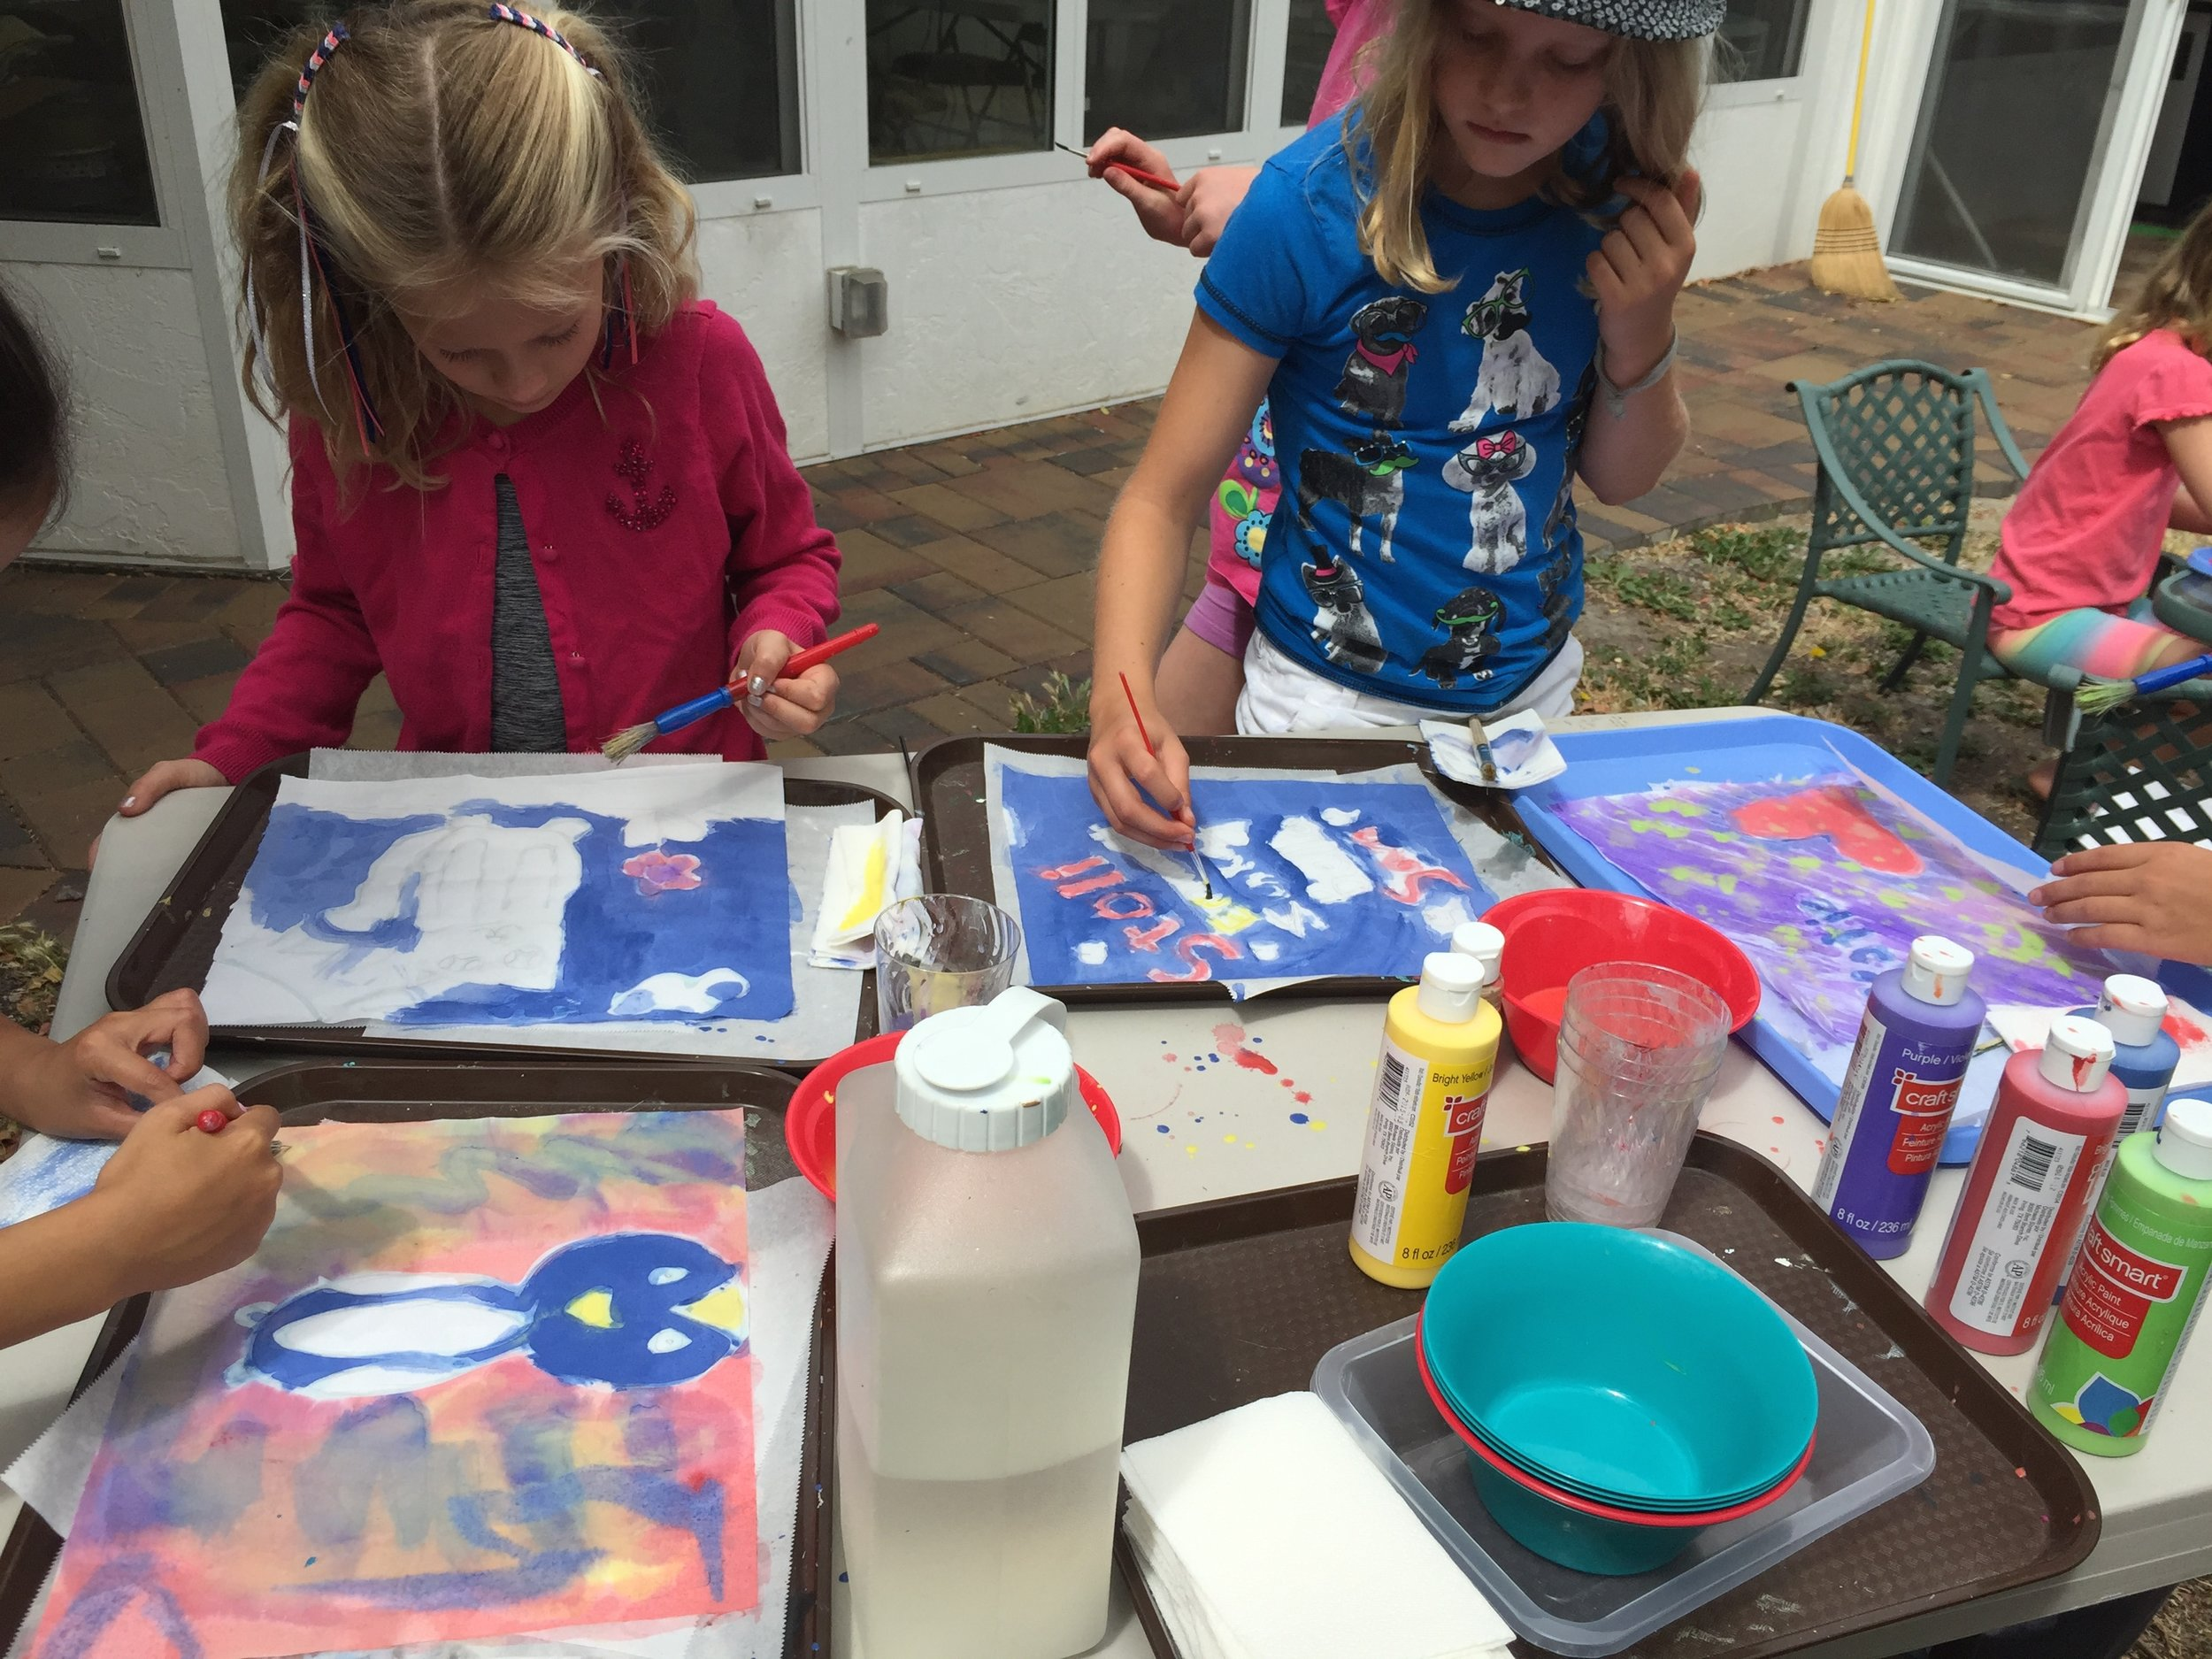 Painting our glue batik projects.